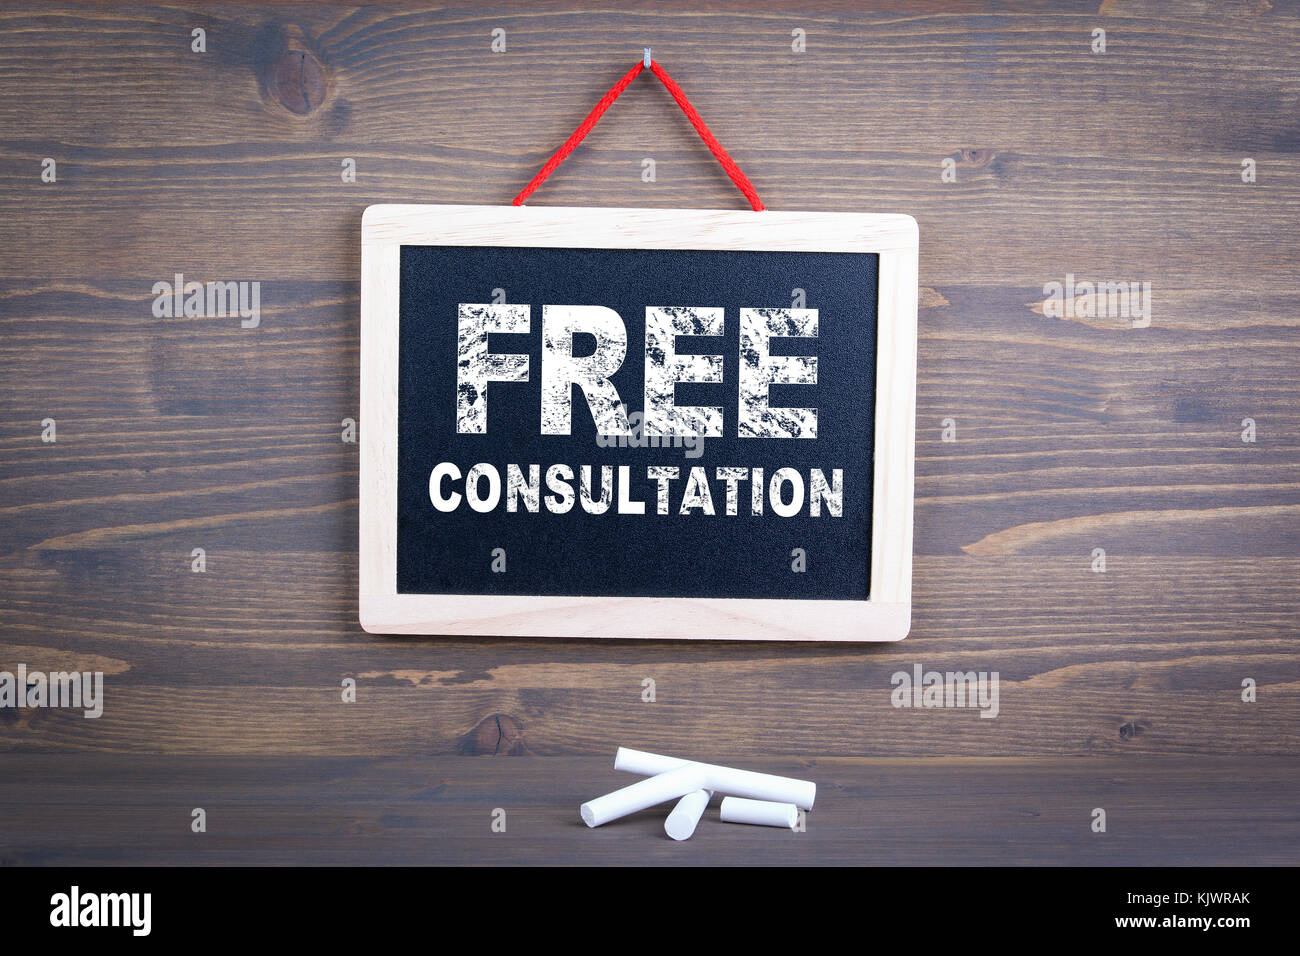 Free Consultation. Business success and customer service concept. Chalkboard on a wooden background  - Stock Image